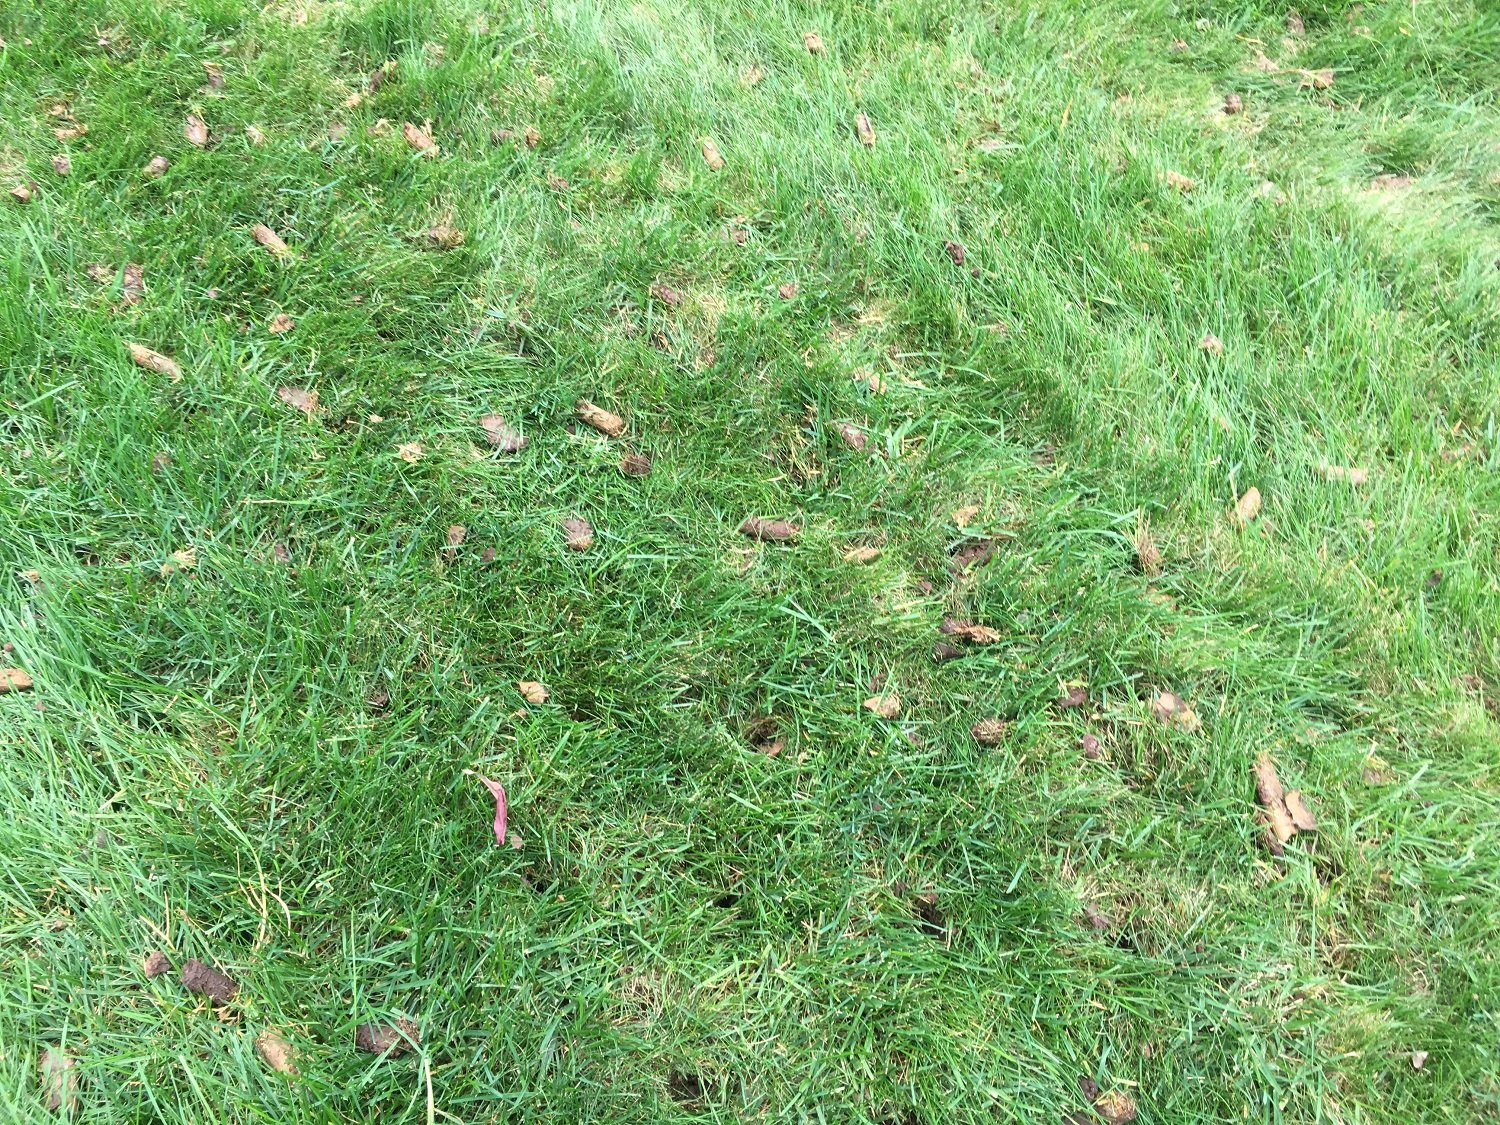 8 Questions to Ask When Hiring a Lawn Aeration Service in South Riding, VA